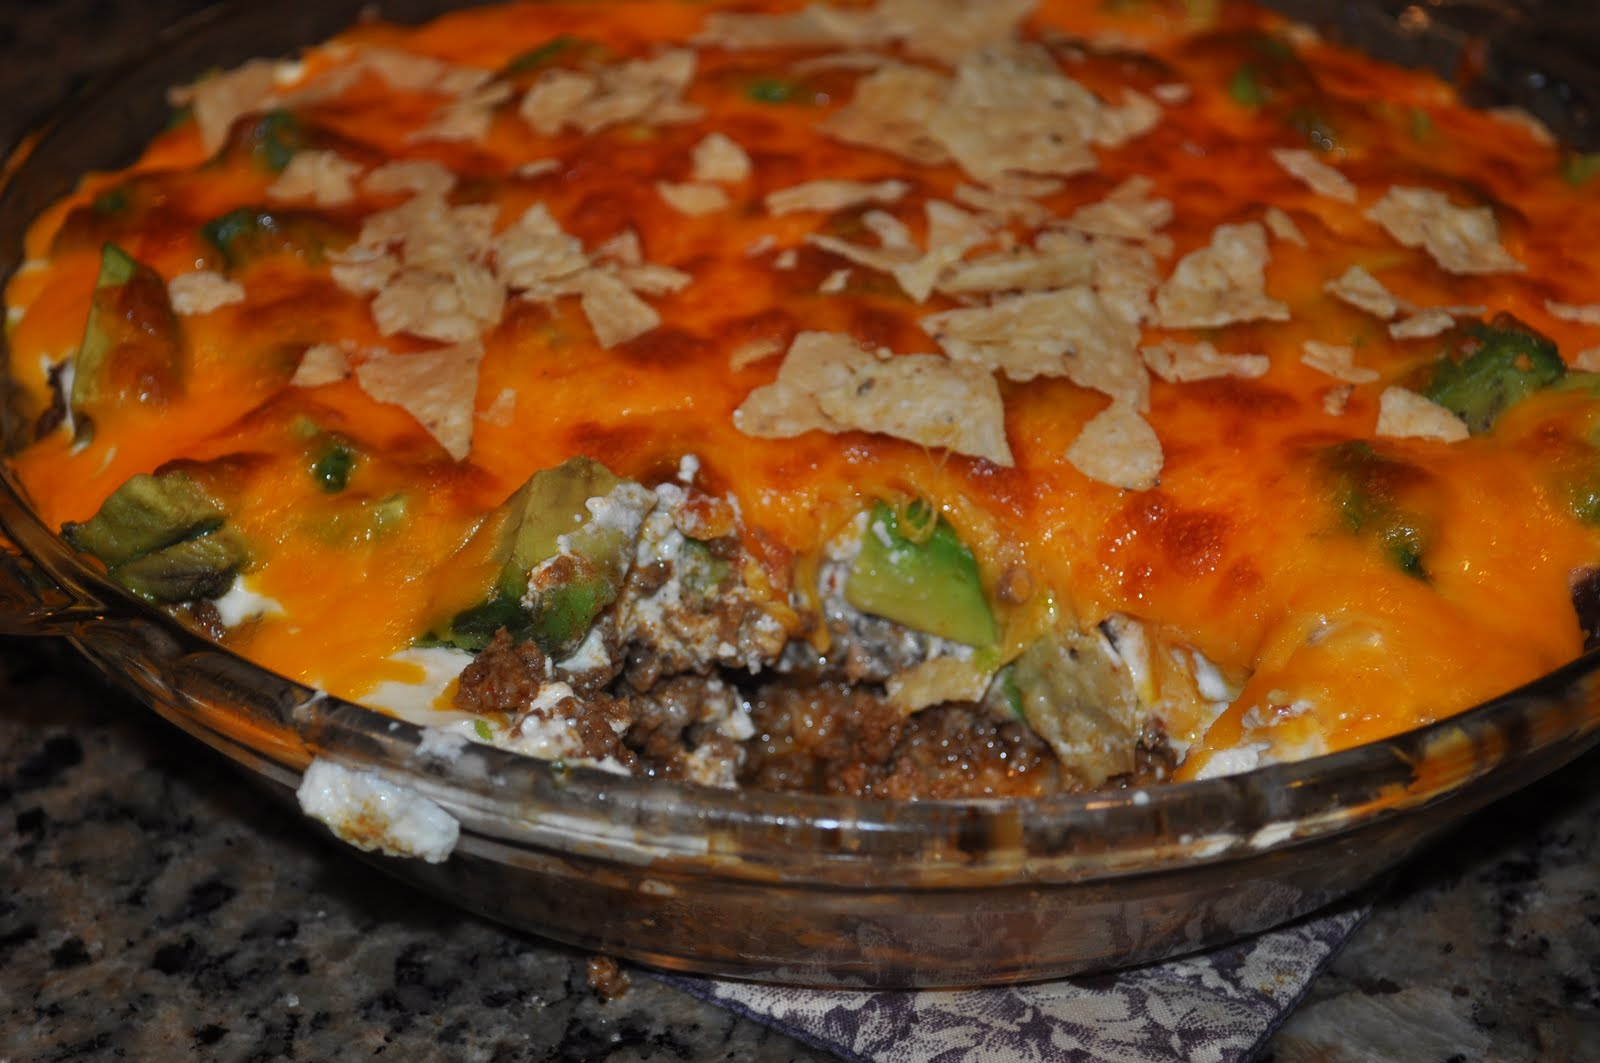 Beth's Favorite Recipes: Five Layer Taco Dip